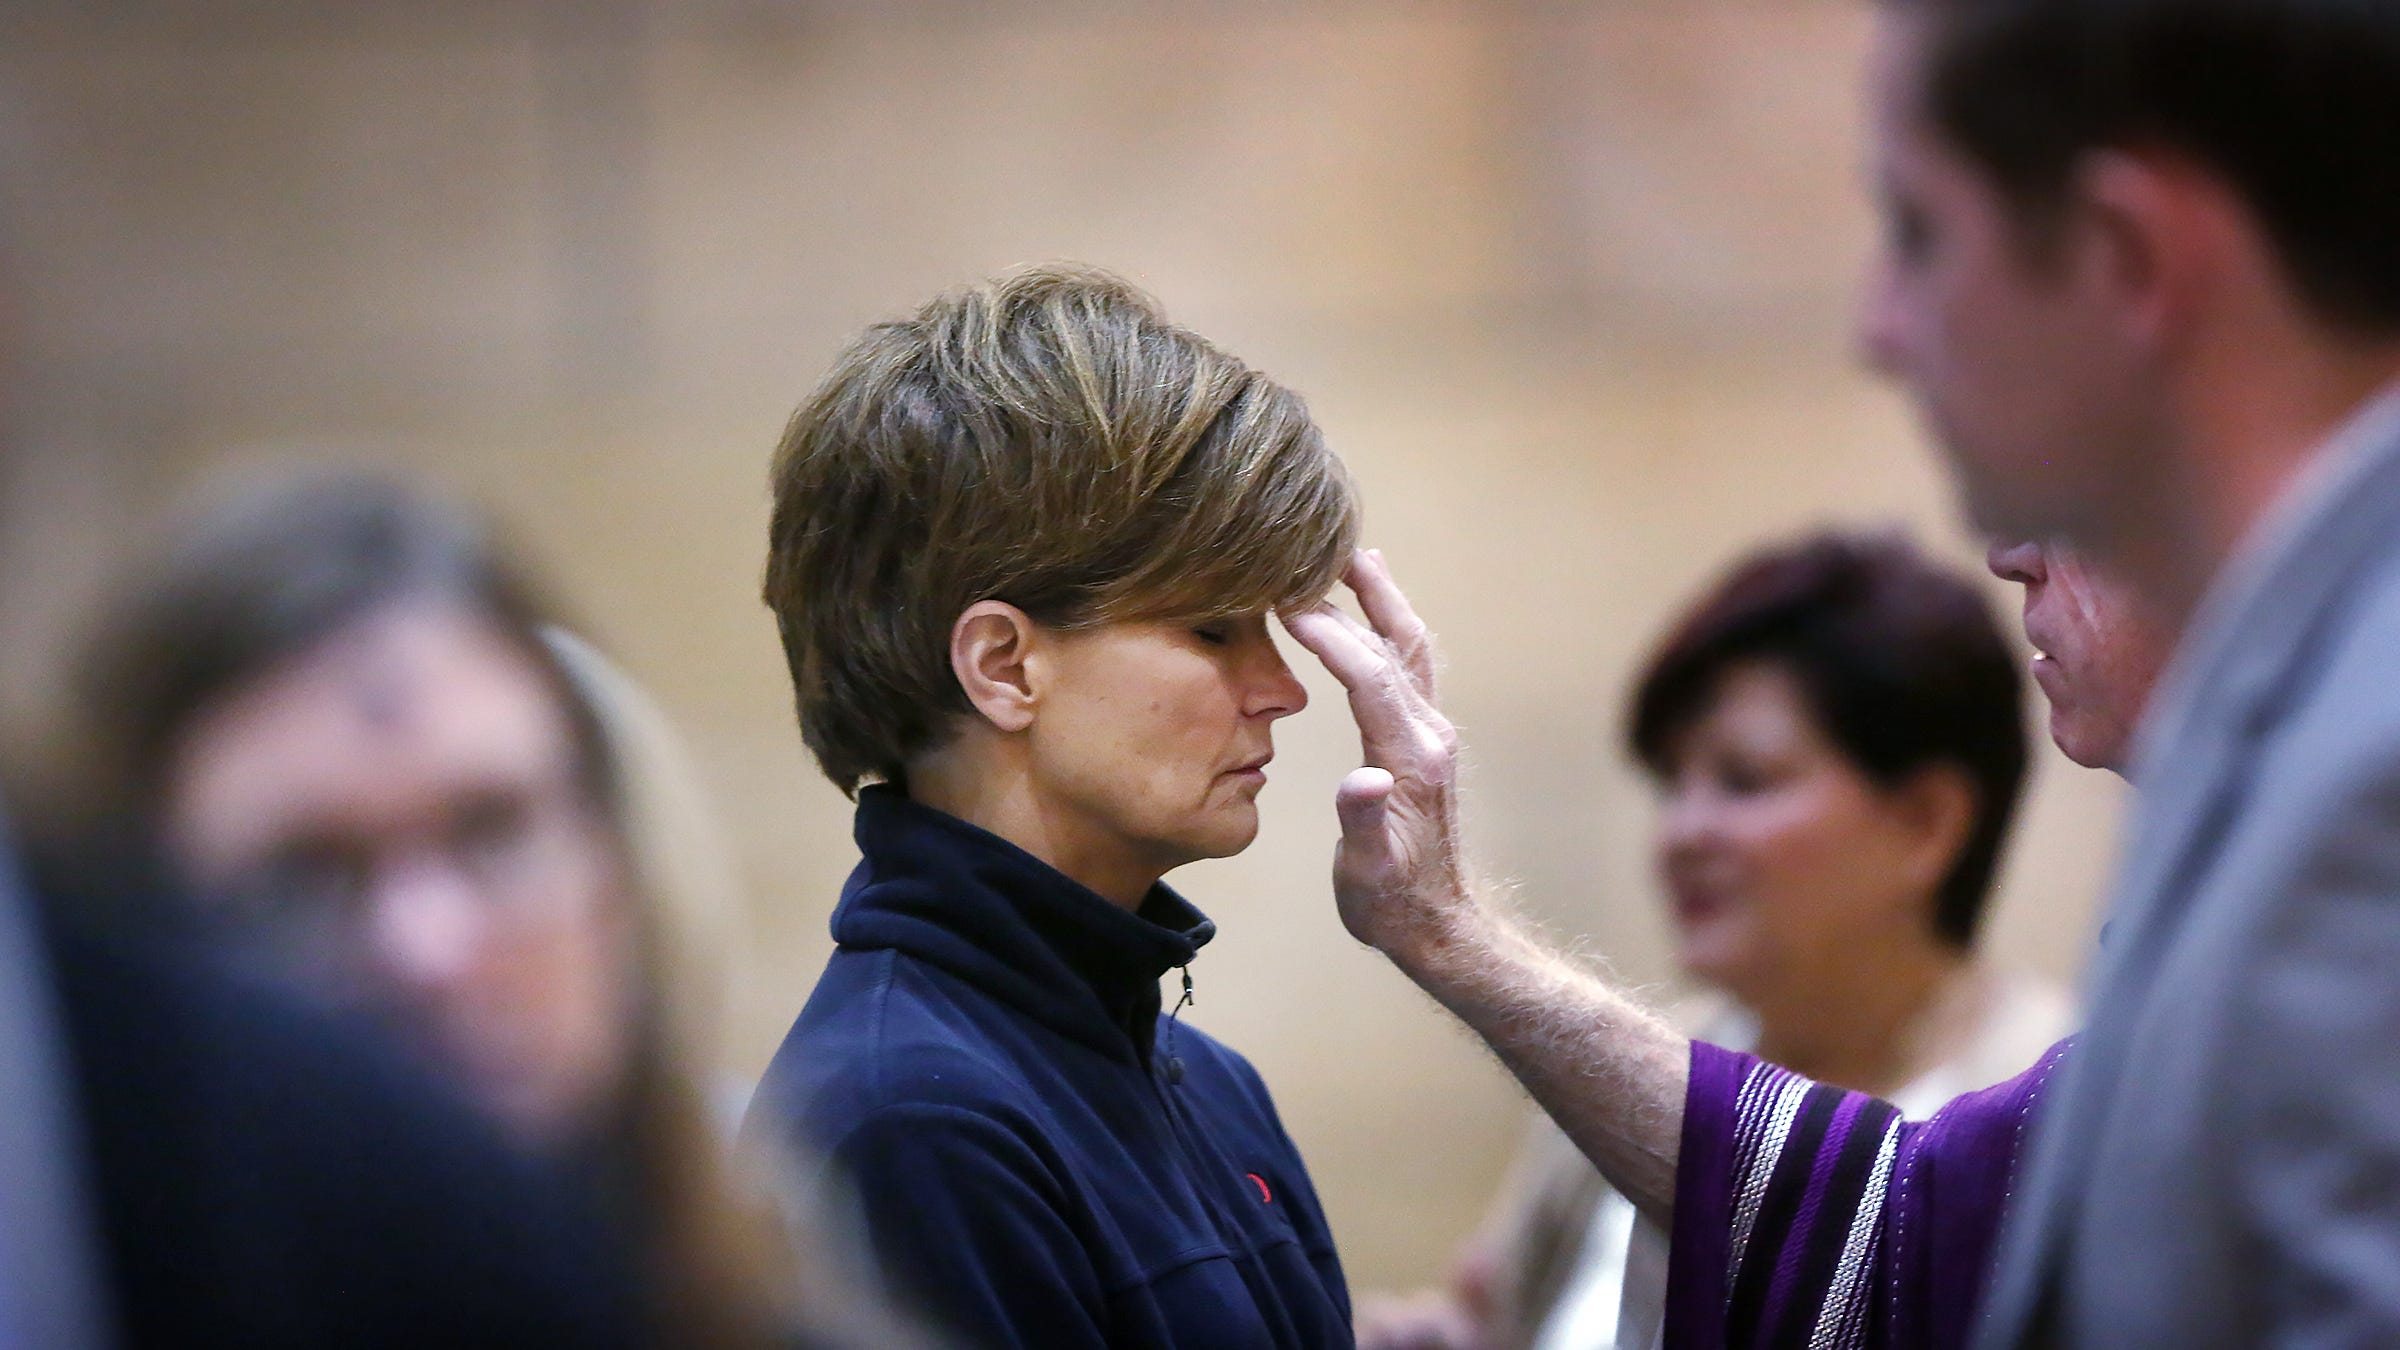 Lent Community Calendar Readings For February 2019 & March 2019 Ash Wednesday: Why Christians wear ashes, fast and give things up